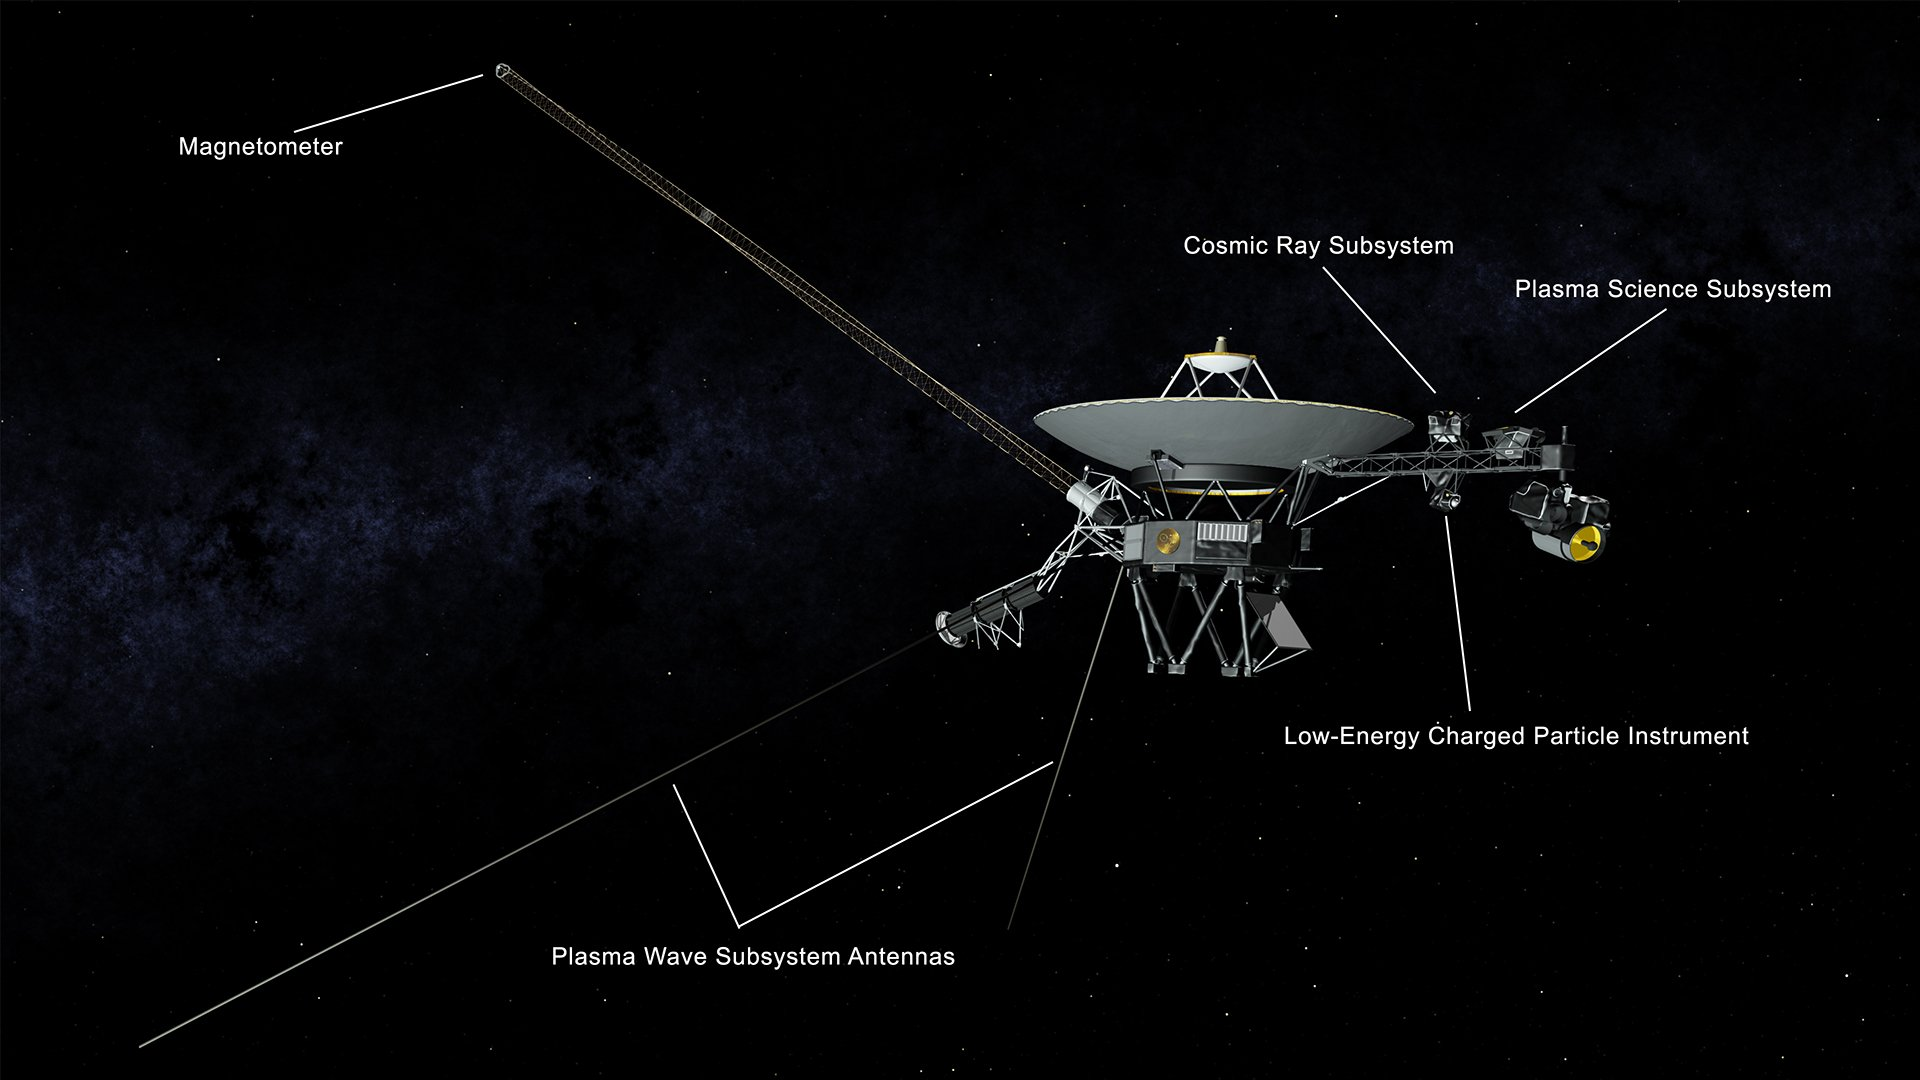 This illustration of NASA's Voyager 2 spacecraft shows the location of the onboard science instruments that are still operating: the magnetometer, the cosmic ray subsystem, the plasma science experiment, the low-energy charged particle instrument and the antennas used by the plasma wave subsystem. Credit: NASA/JPL-Caltech